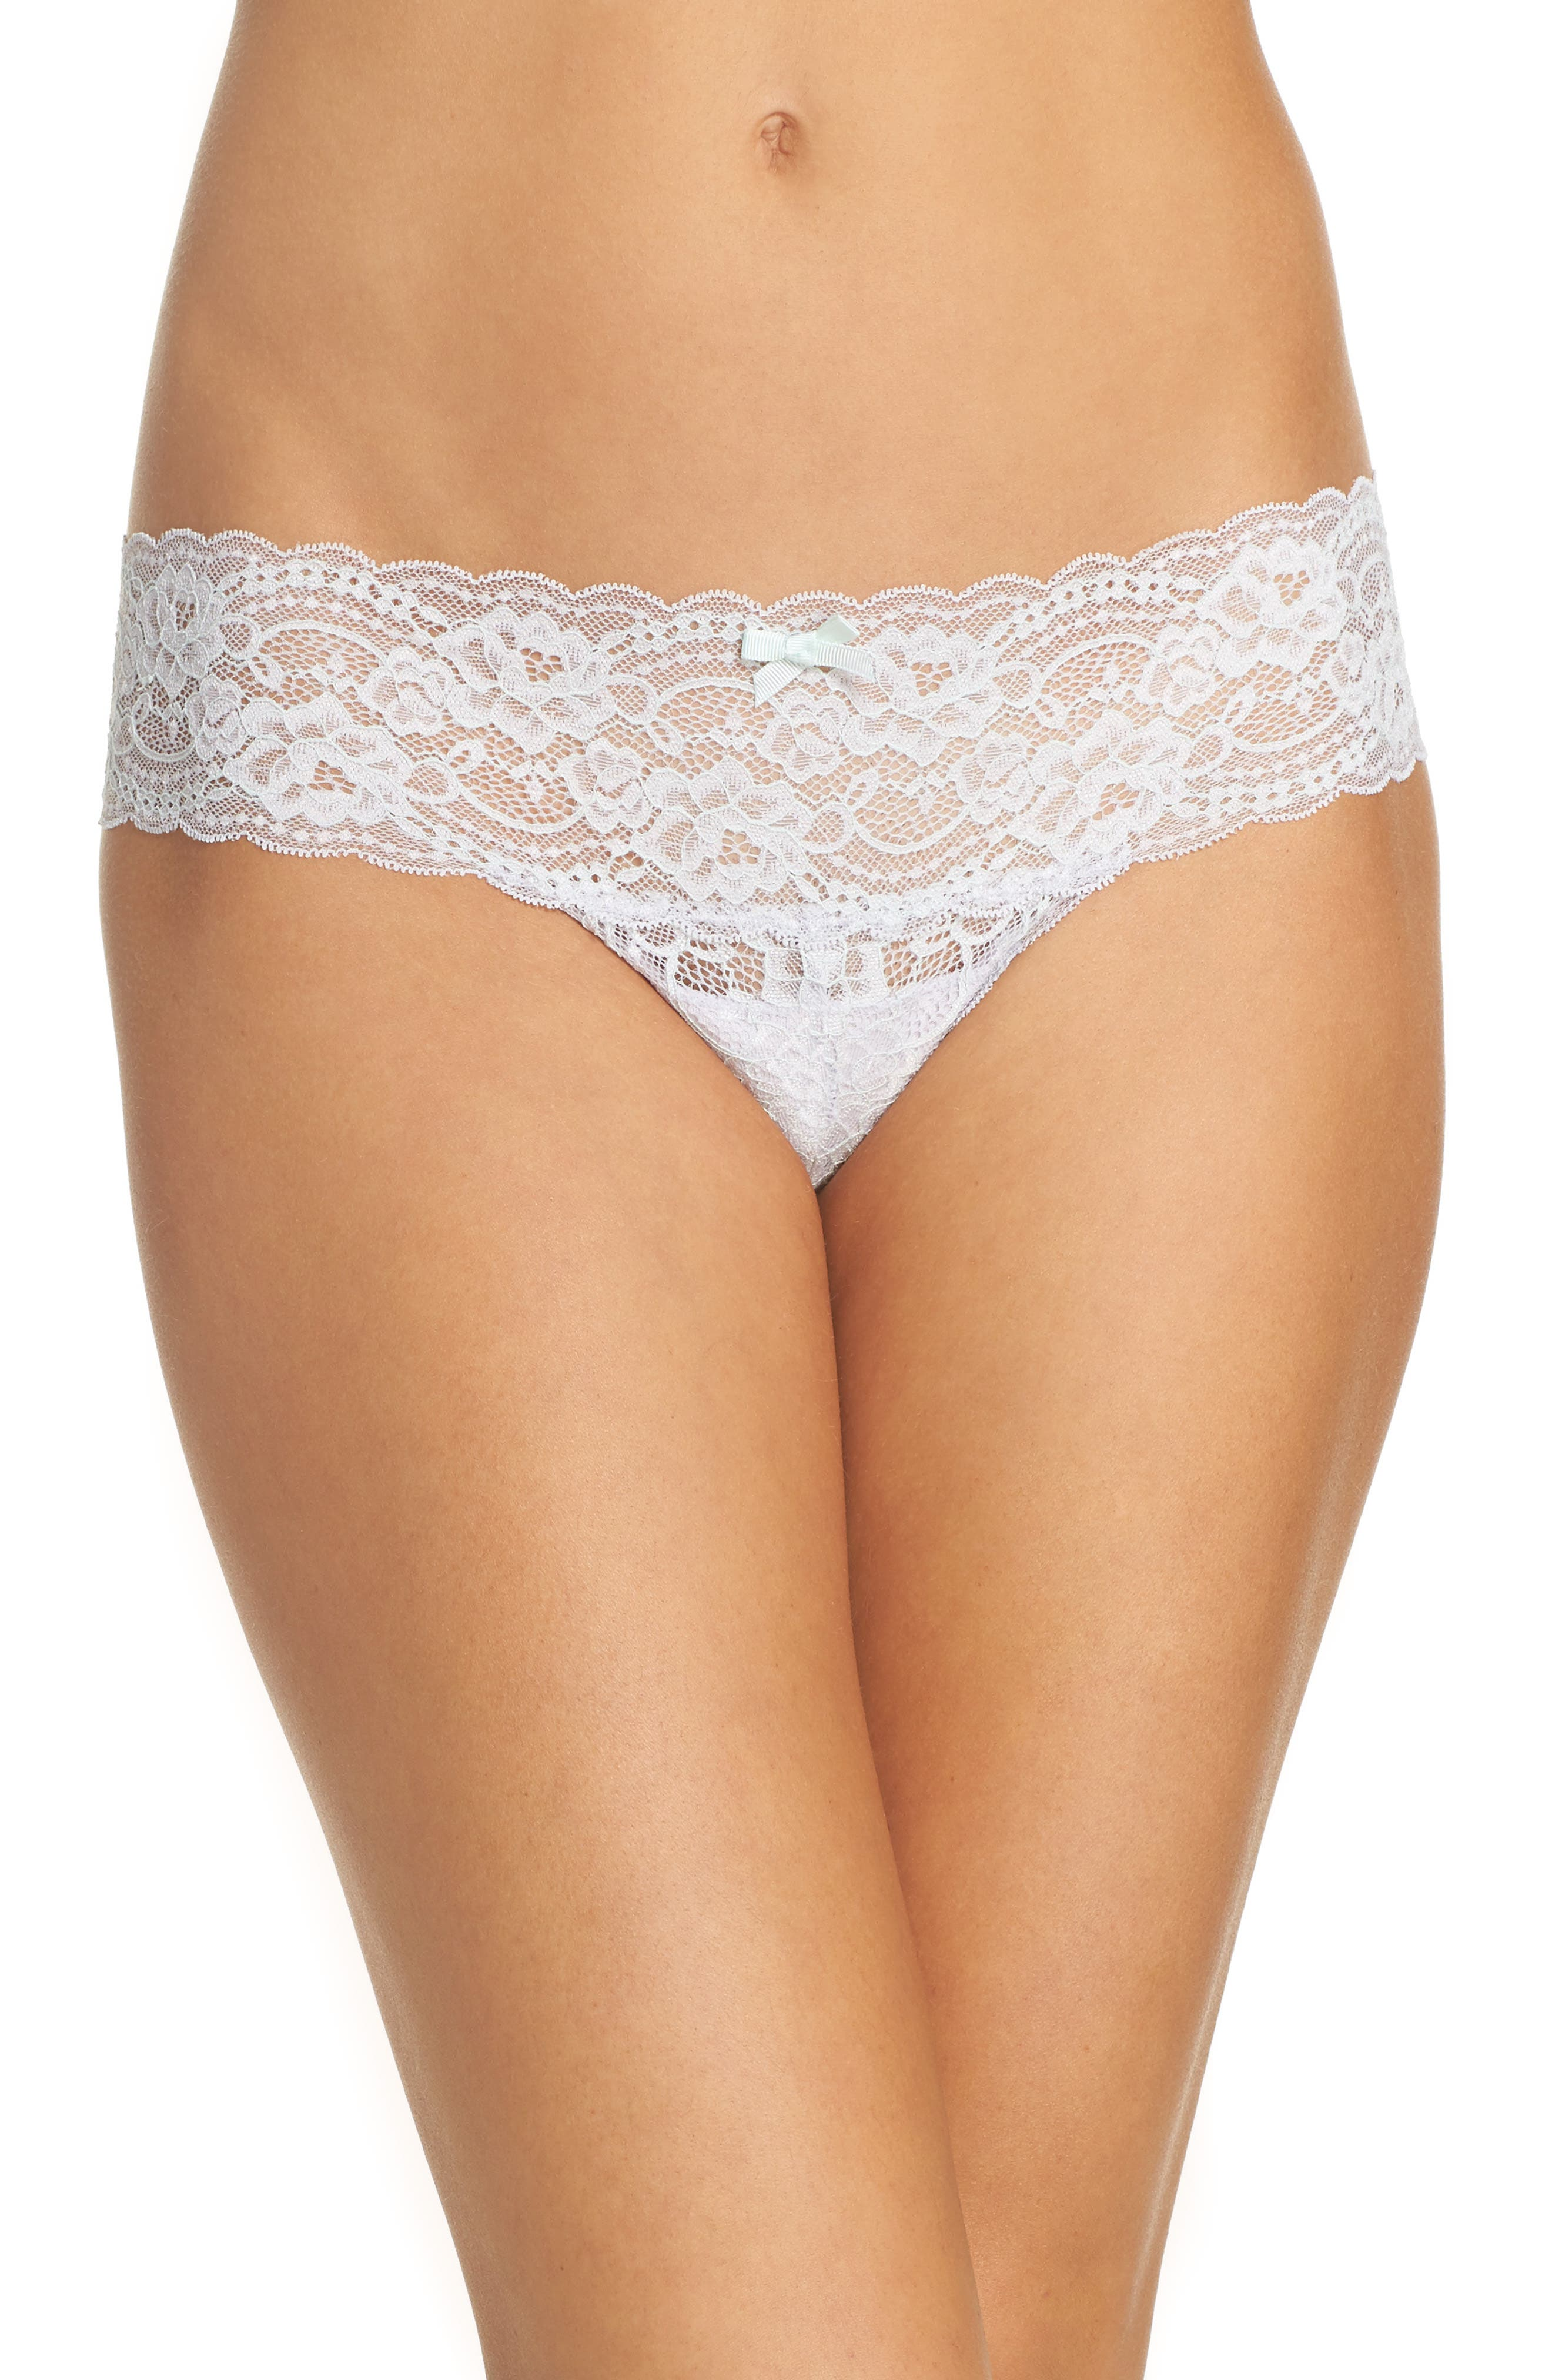 Main Image - Skarlett Blue 'Obsessed' Lace Thong (3 for $45)